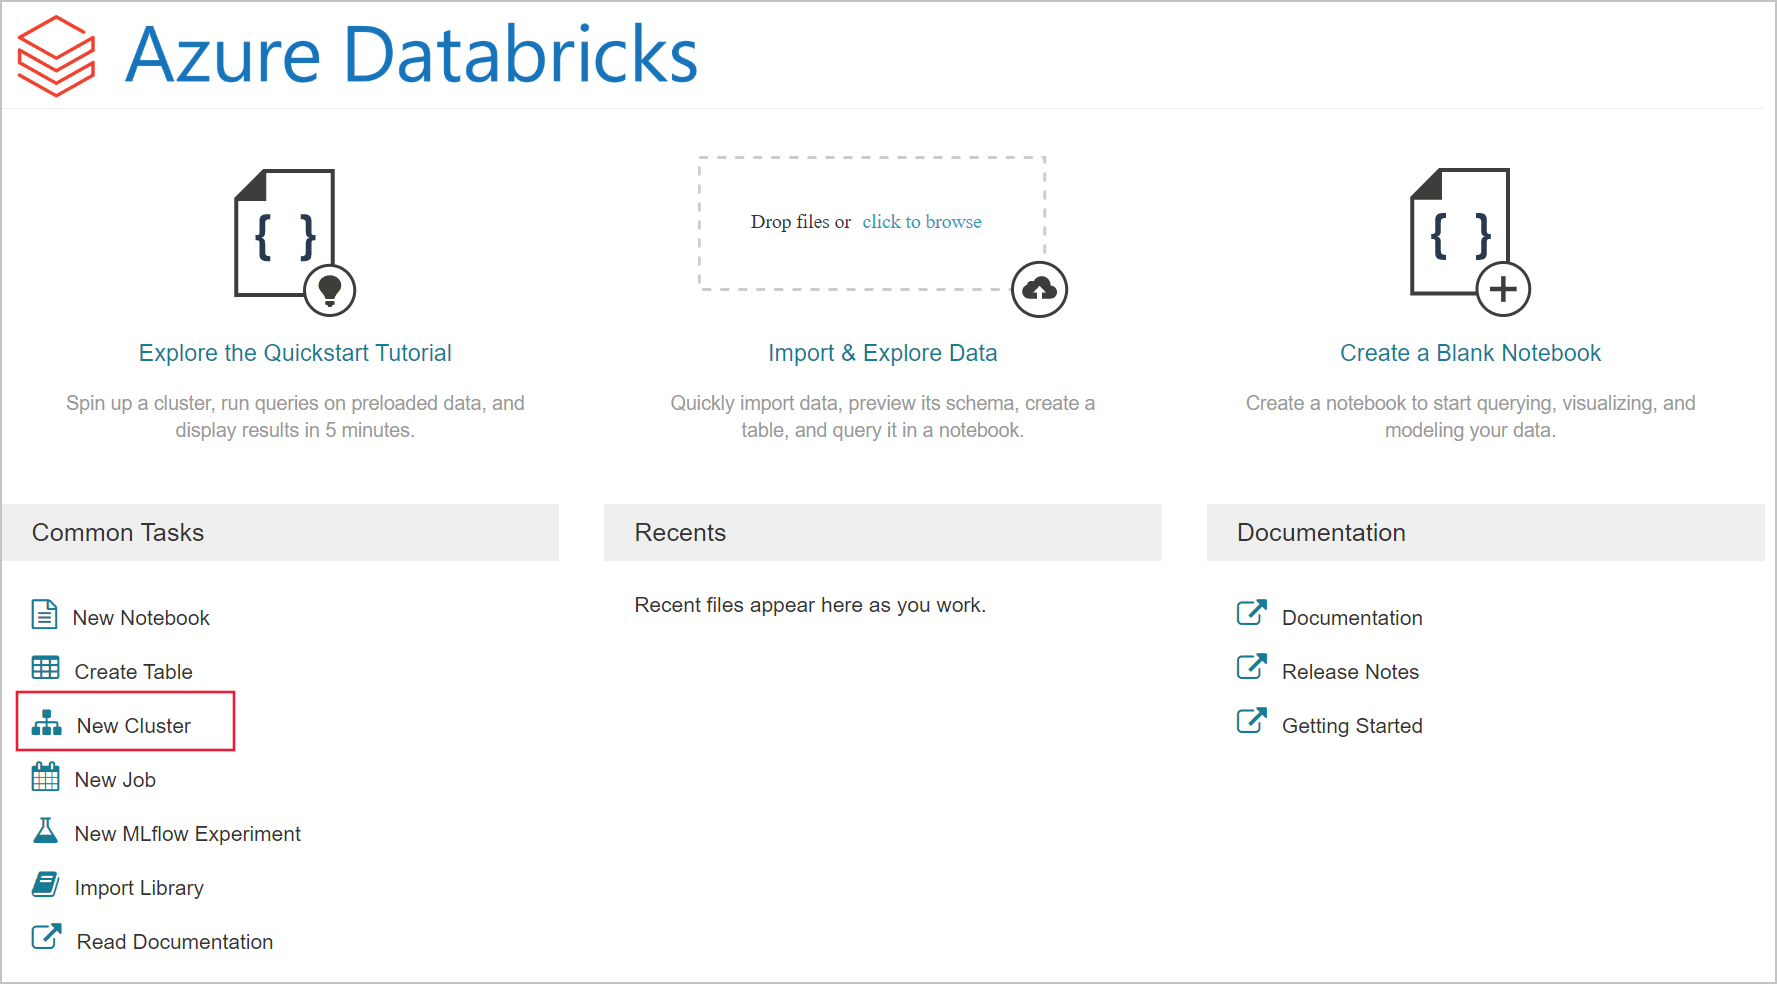 Tutorial: Stream data into Azure Databricks using Event Hubs